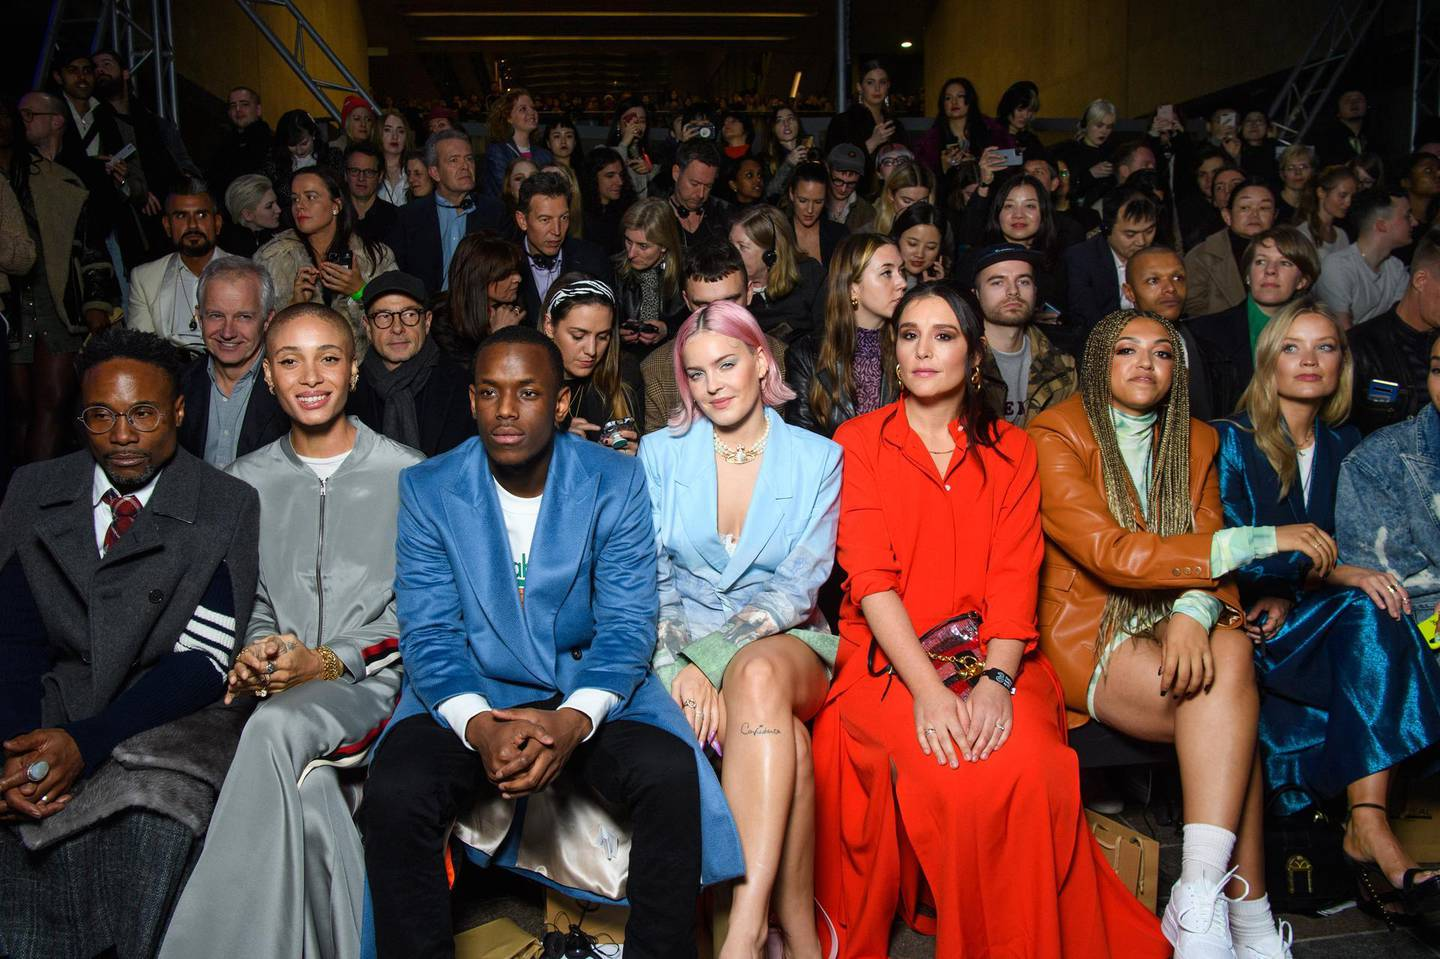 EDITORIAL USE ONLY (left to right) Billy Porter, Adwoa Aboah, Micheal Ward, Anne Marie, Jessie Ware, Mahalia and Laura Whitmore attend the Central Saint Martin's MA show at London Fashion Week as a digitally generated version of model Adwoa Aboah is unveiled, showcasing Three's 5G technology.